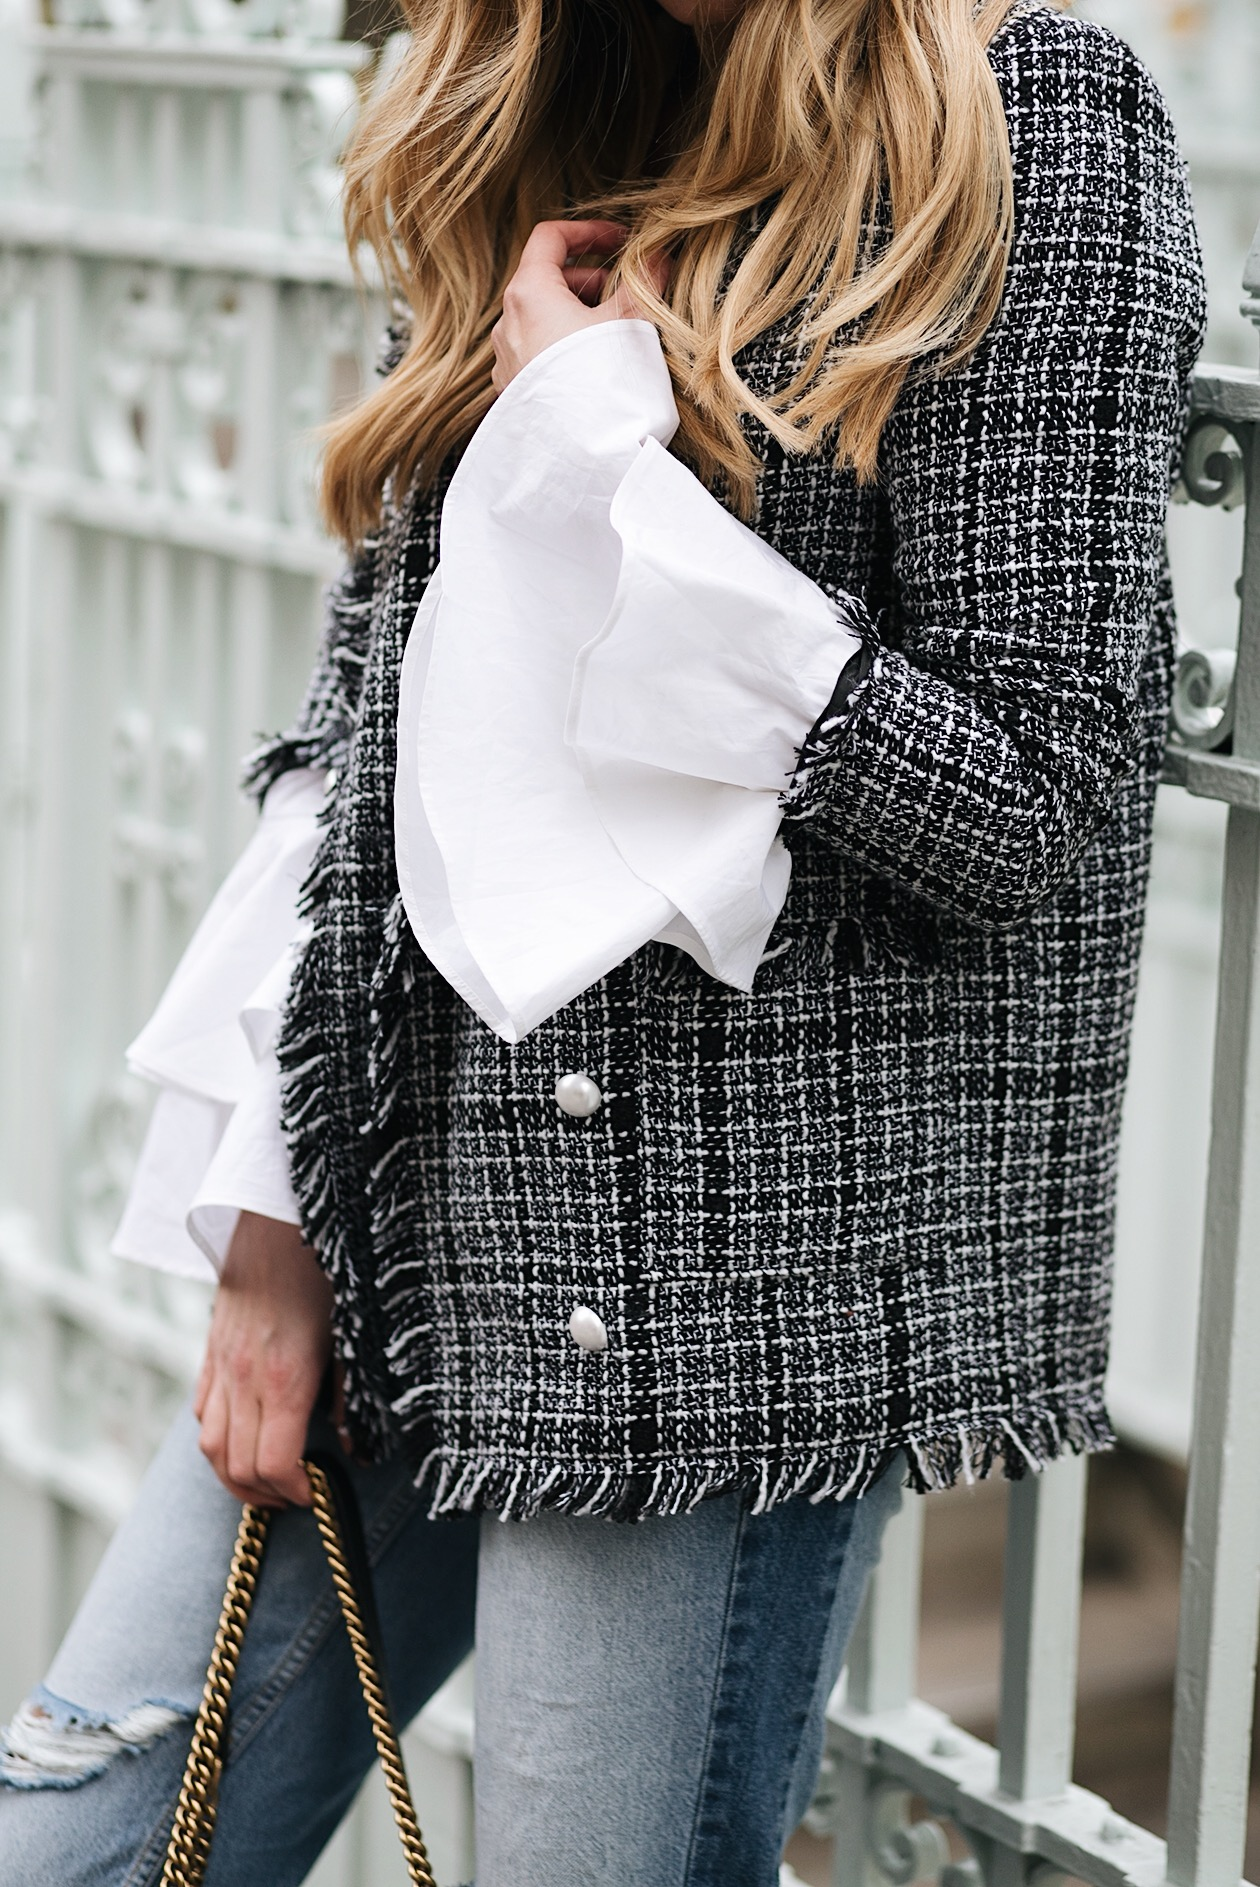 white shirt with flare bell wide cuffs sleeves, chanel style tweed blazer